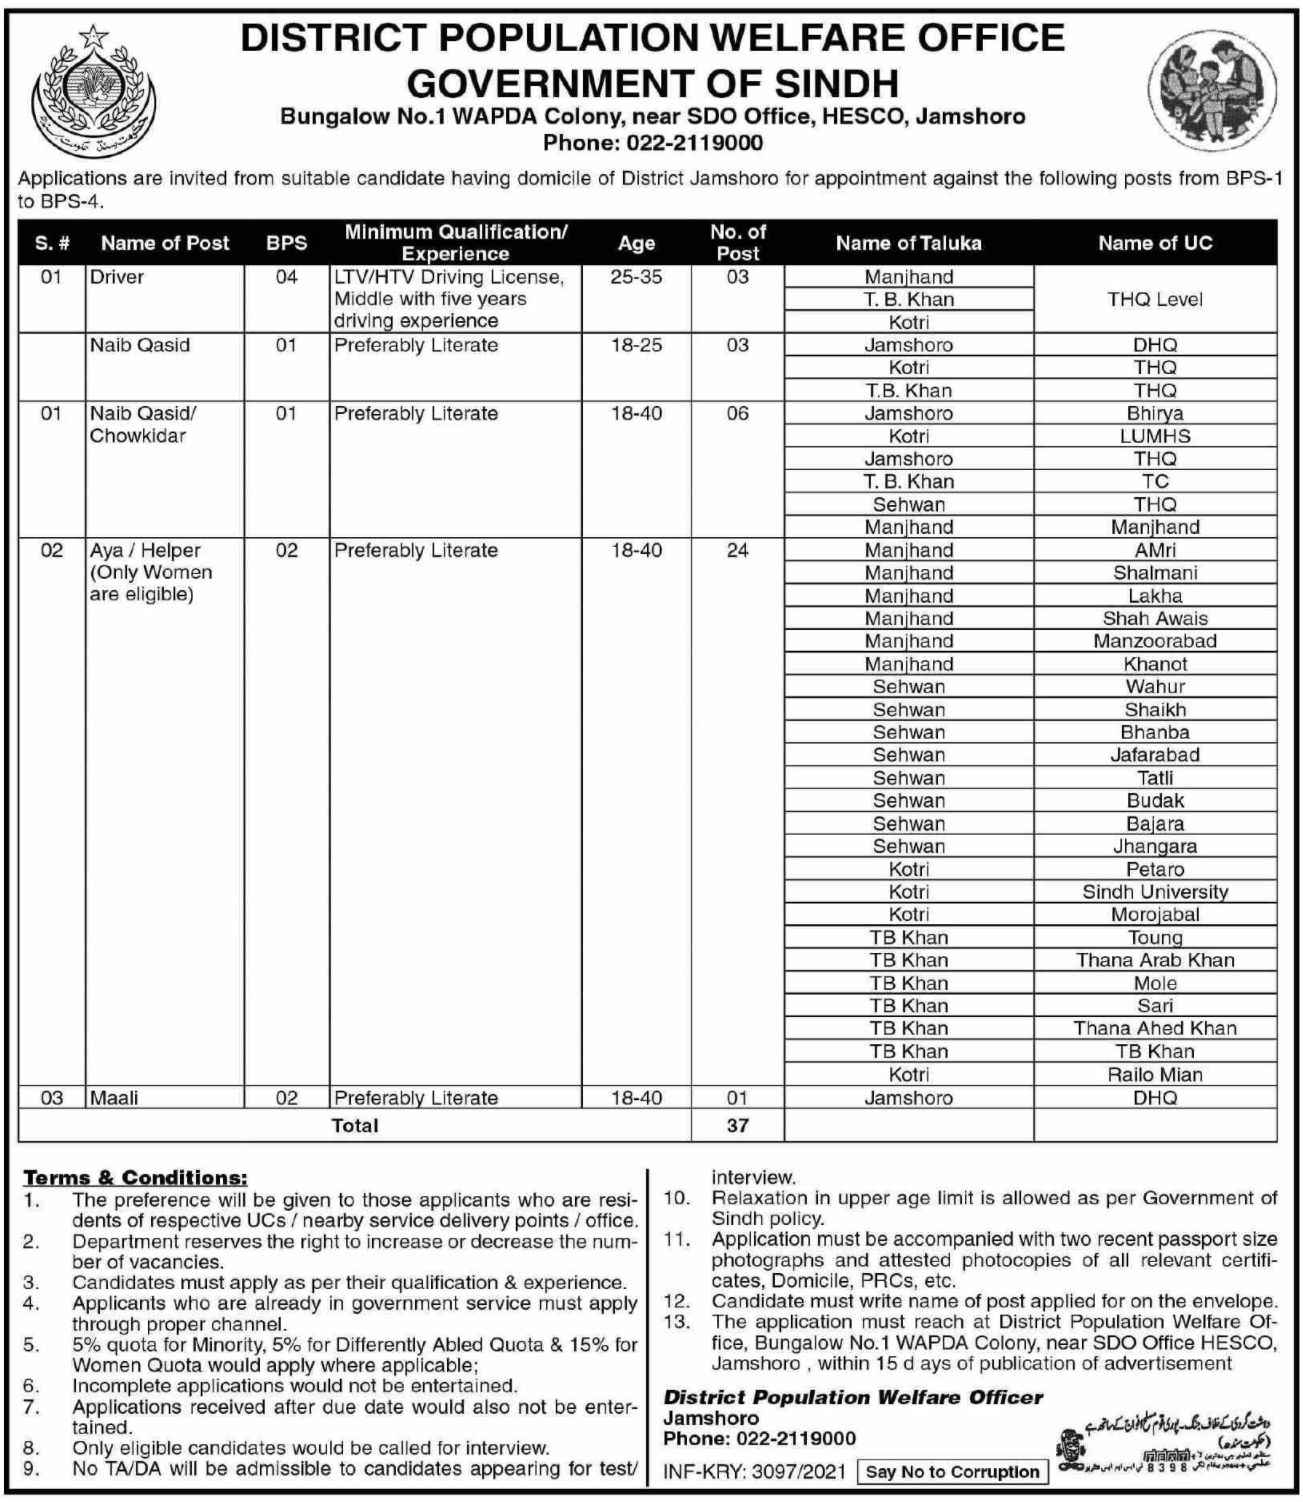 District Population Welfare Office Government of Sindh Vacancies 2021 3